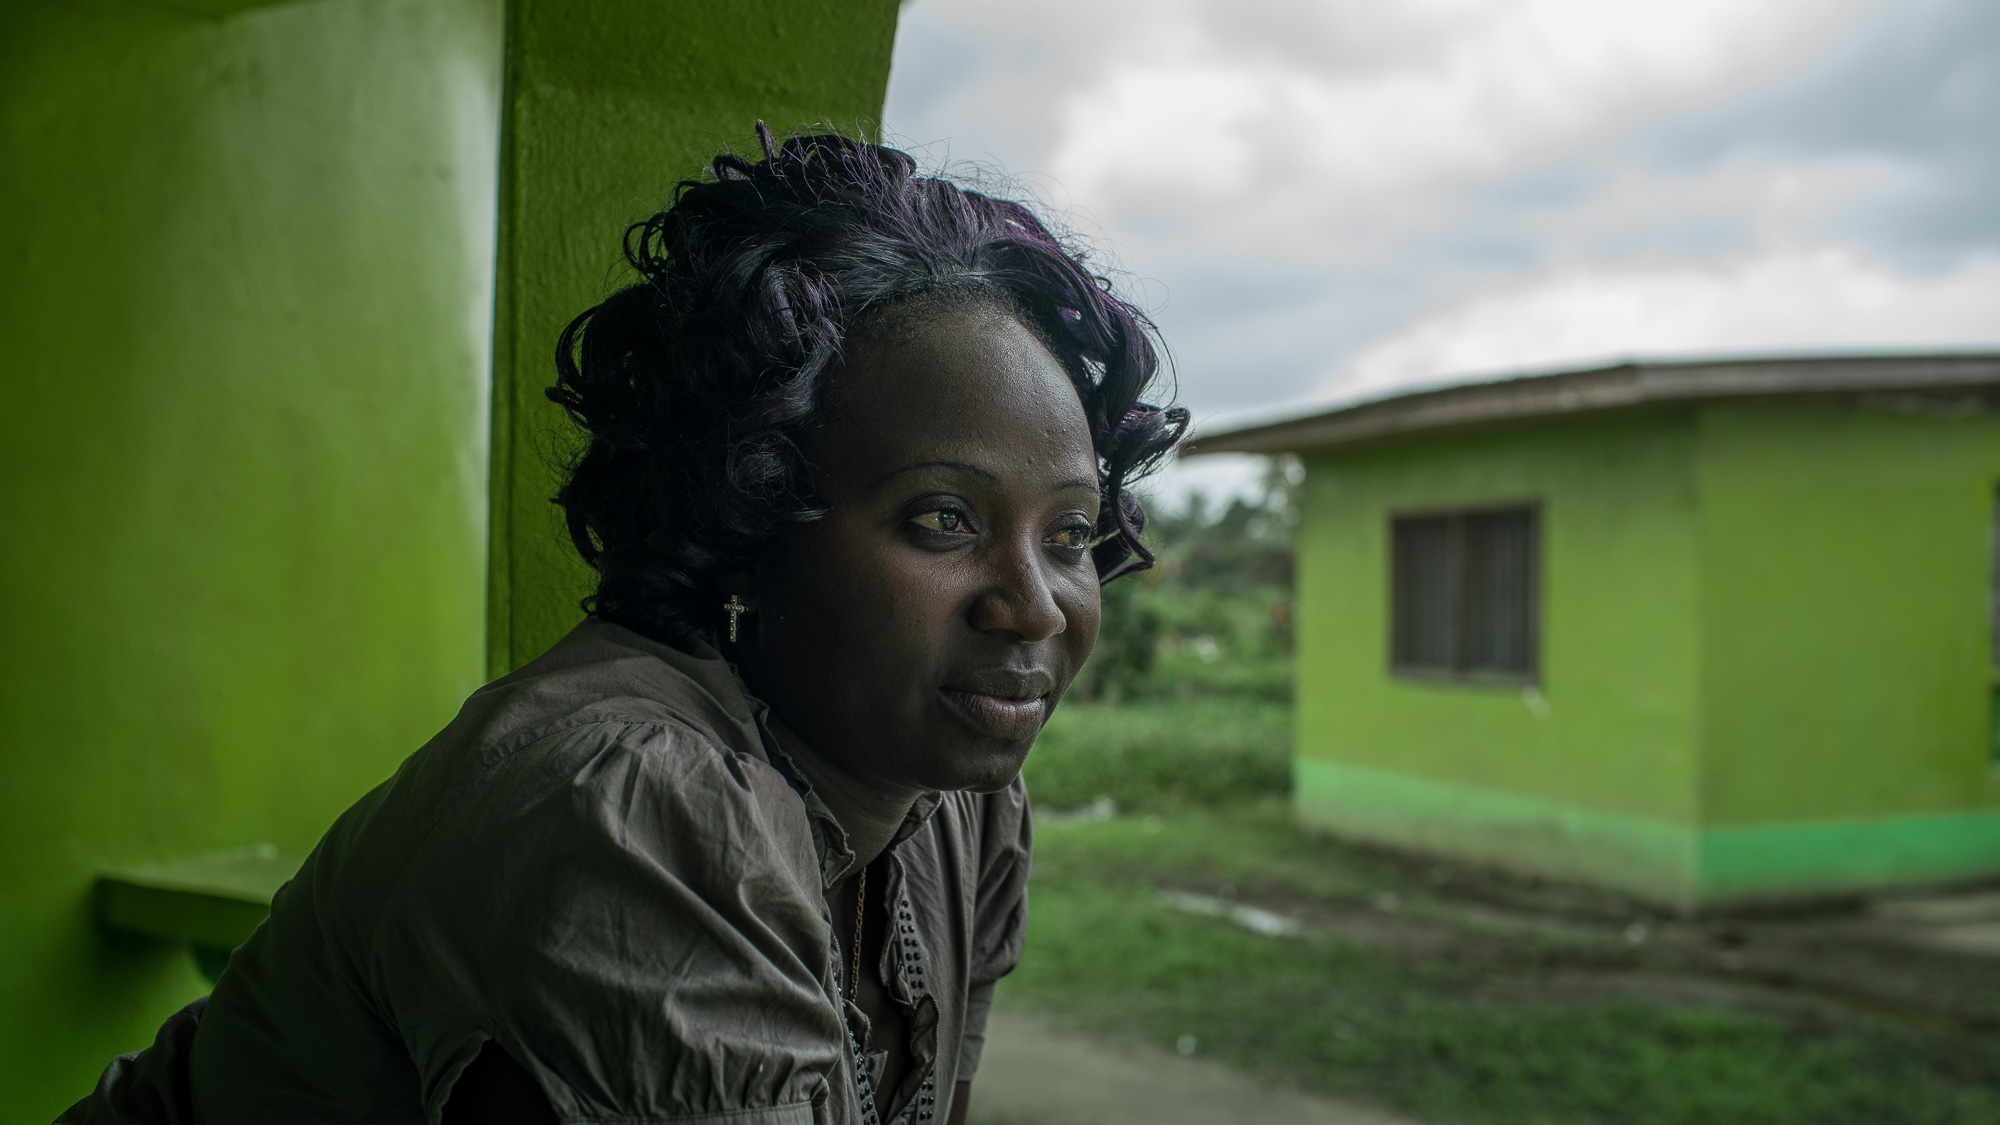 Wislyne S. Yarh Sieh at her home in Monrovia, Liberia